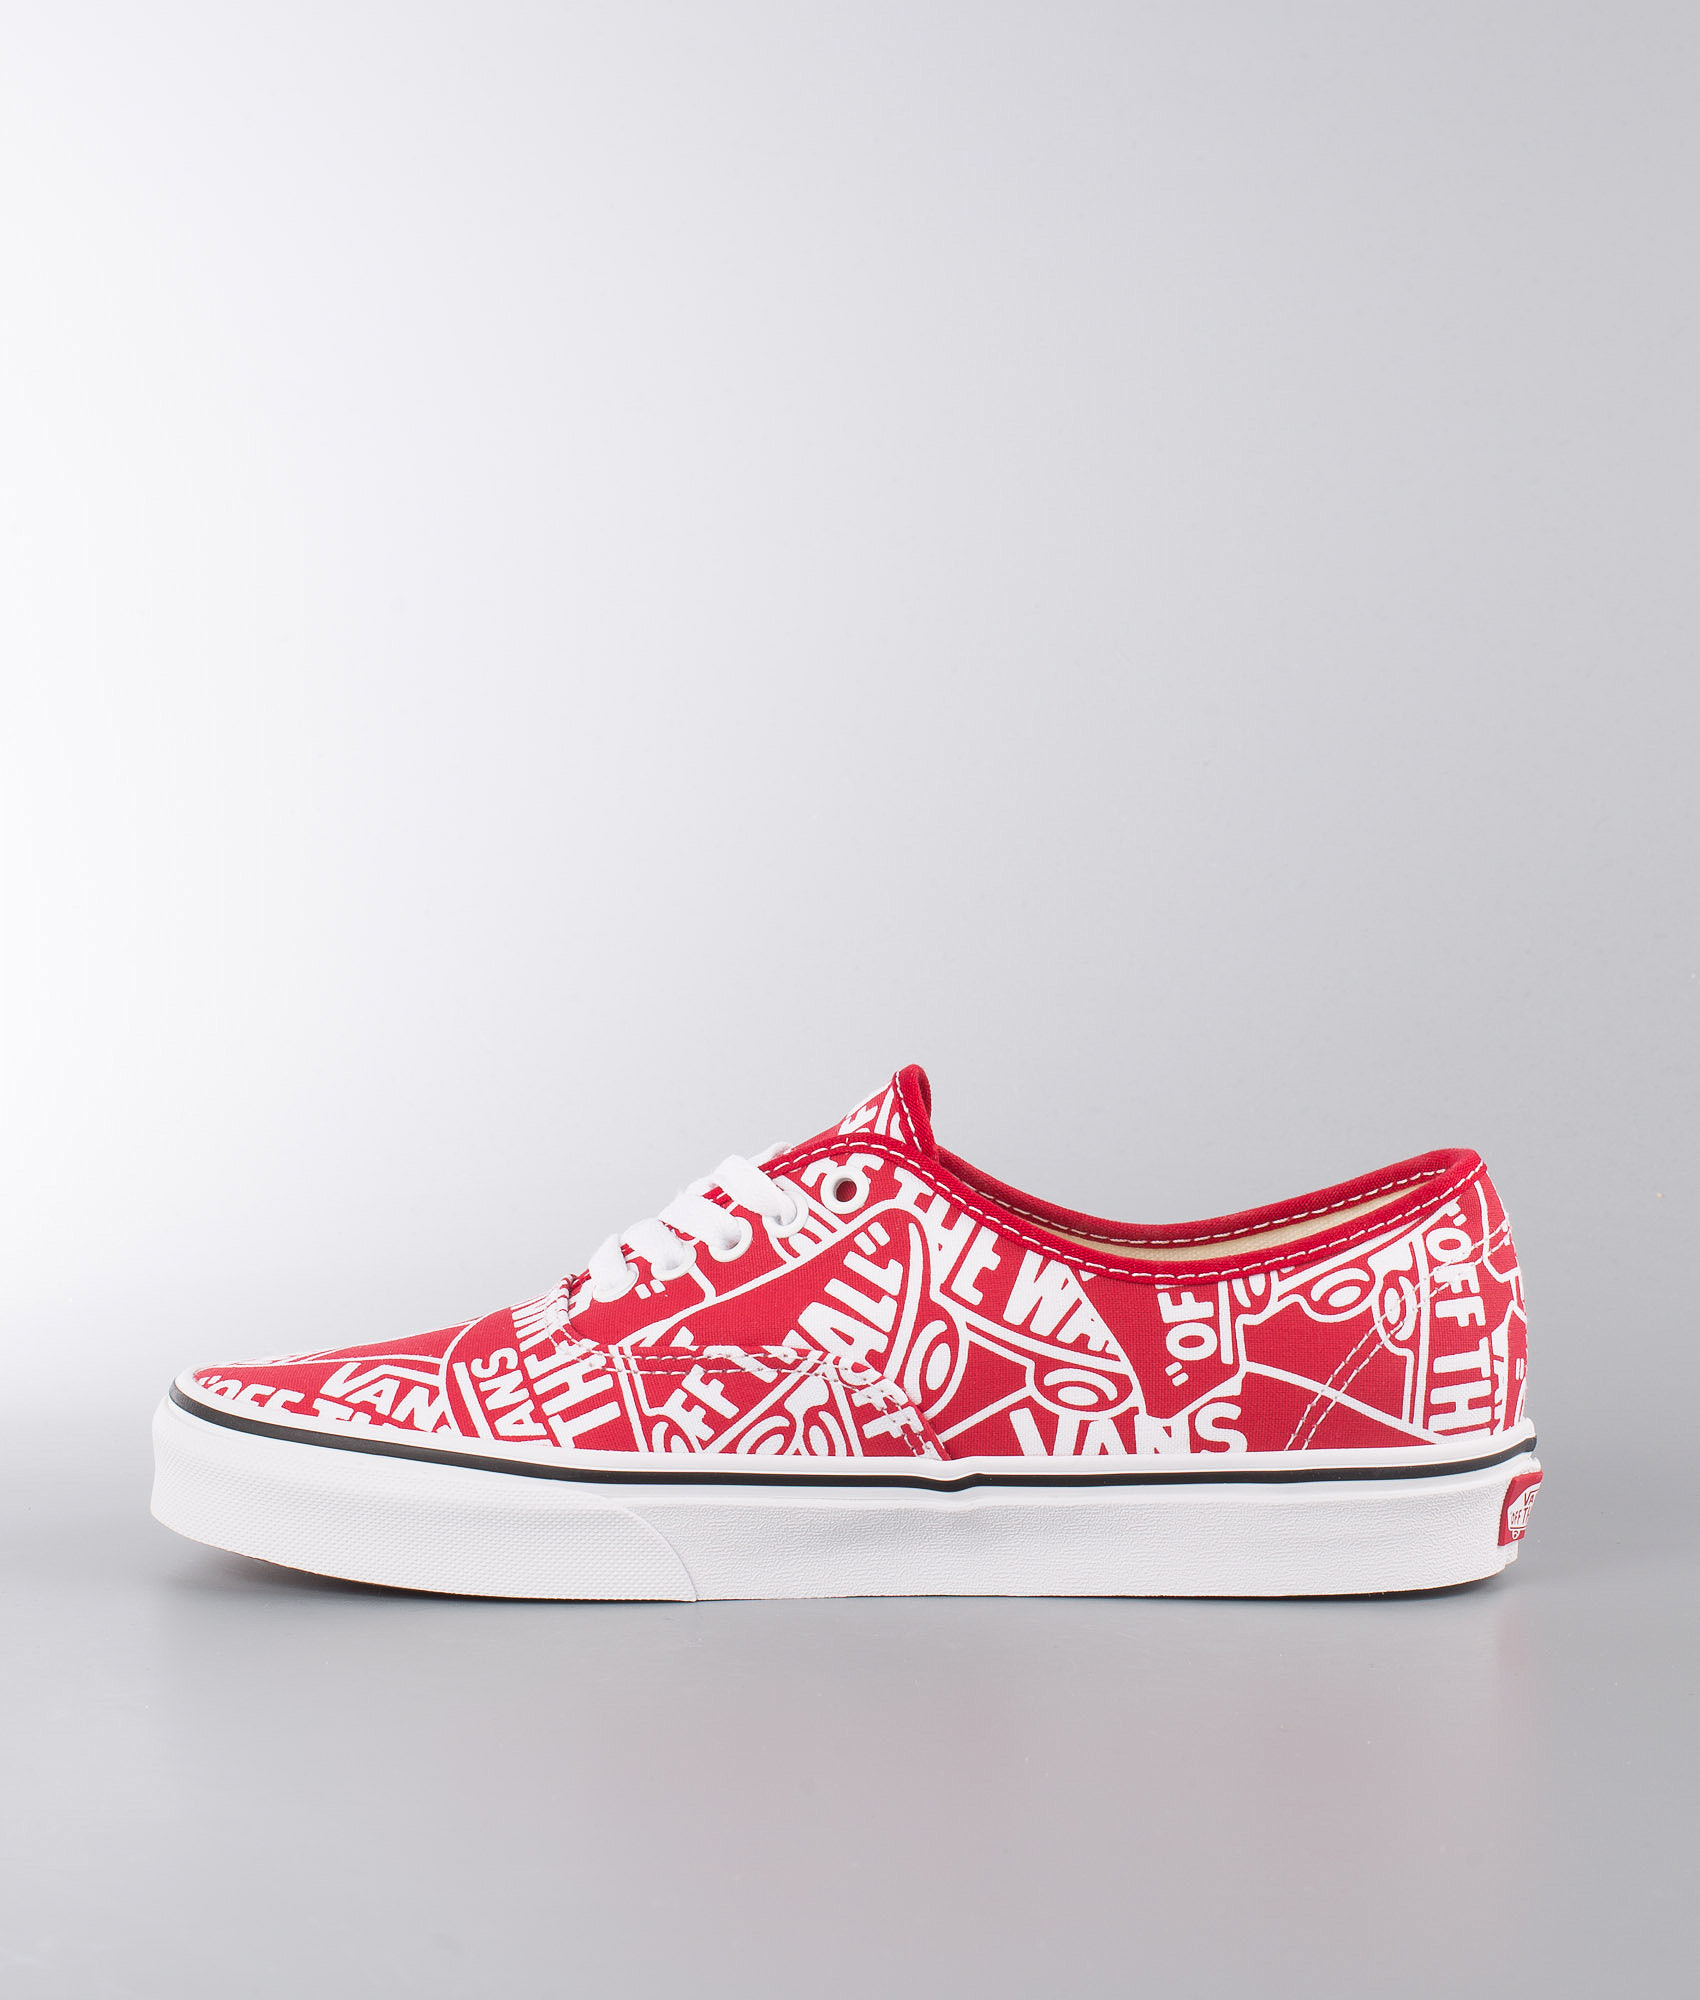 d6e17a79f6 Vans Authentic Shoes (Otw Repeat) Red True White - Ridestore.com